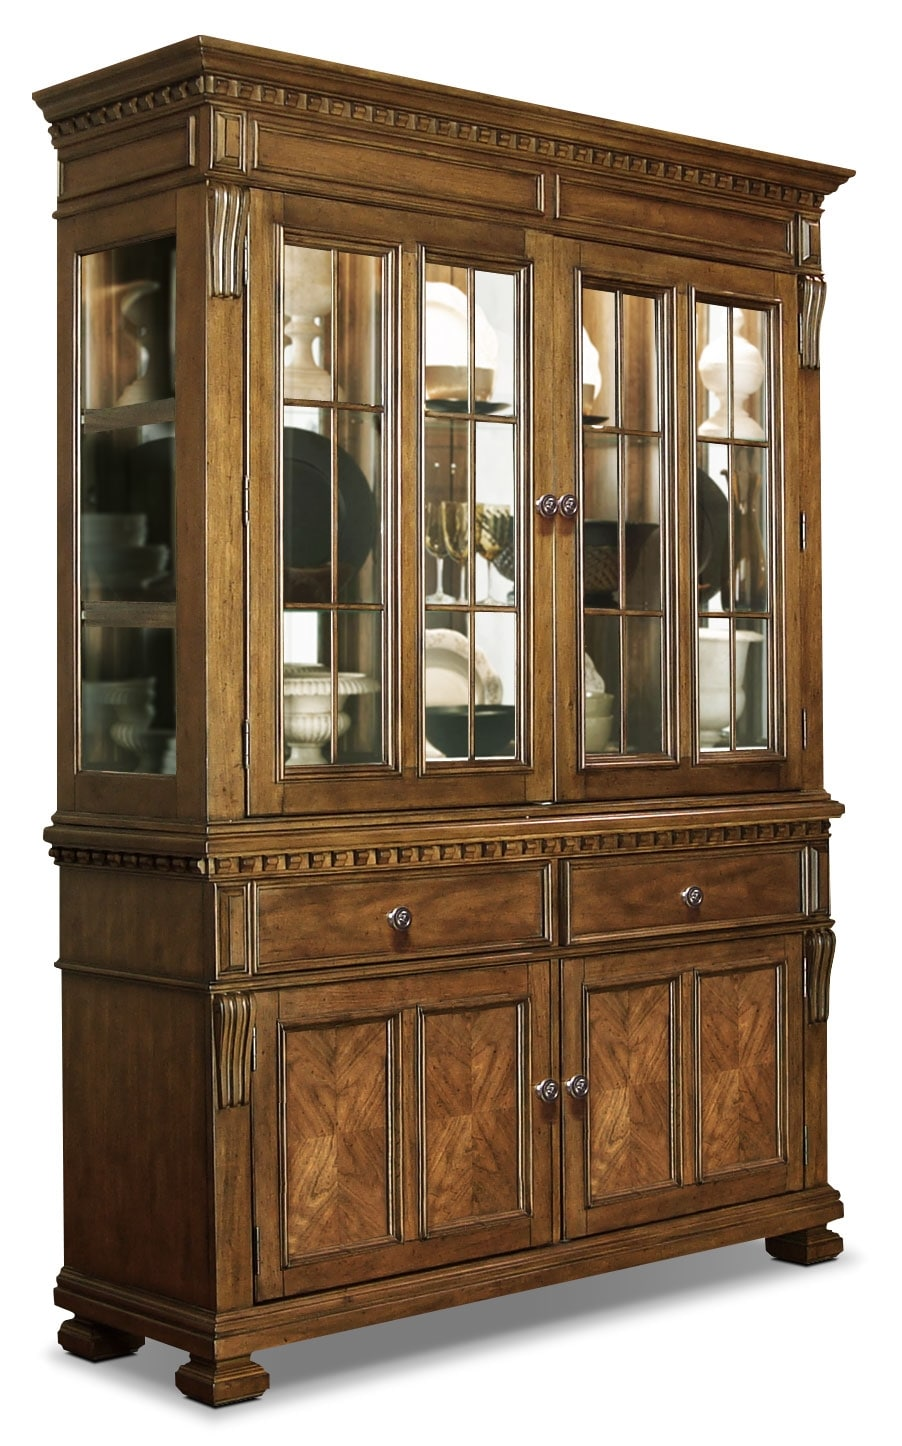 Dining Room Furniture - Clairmont Dining Buffet and Hutch Package